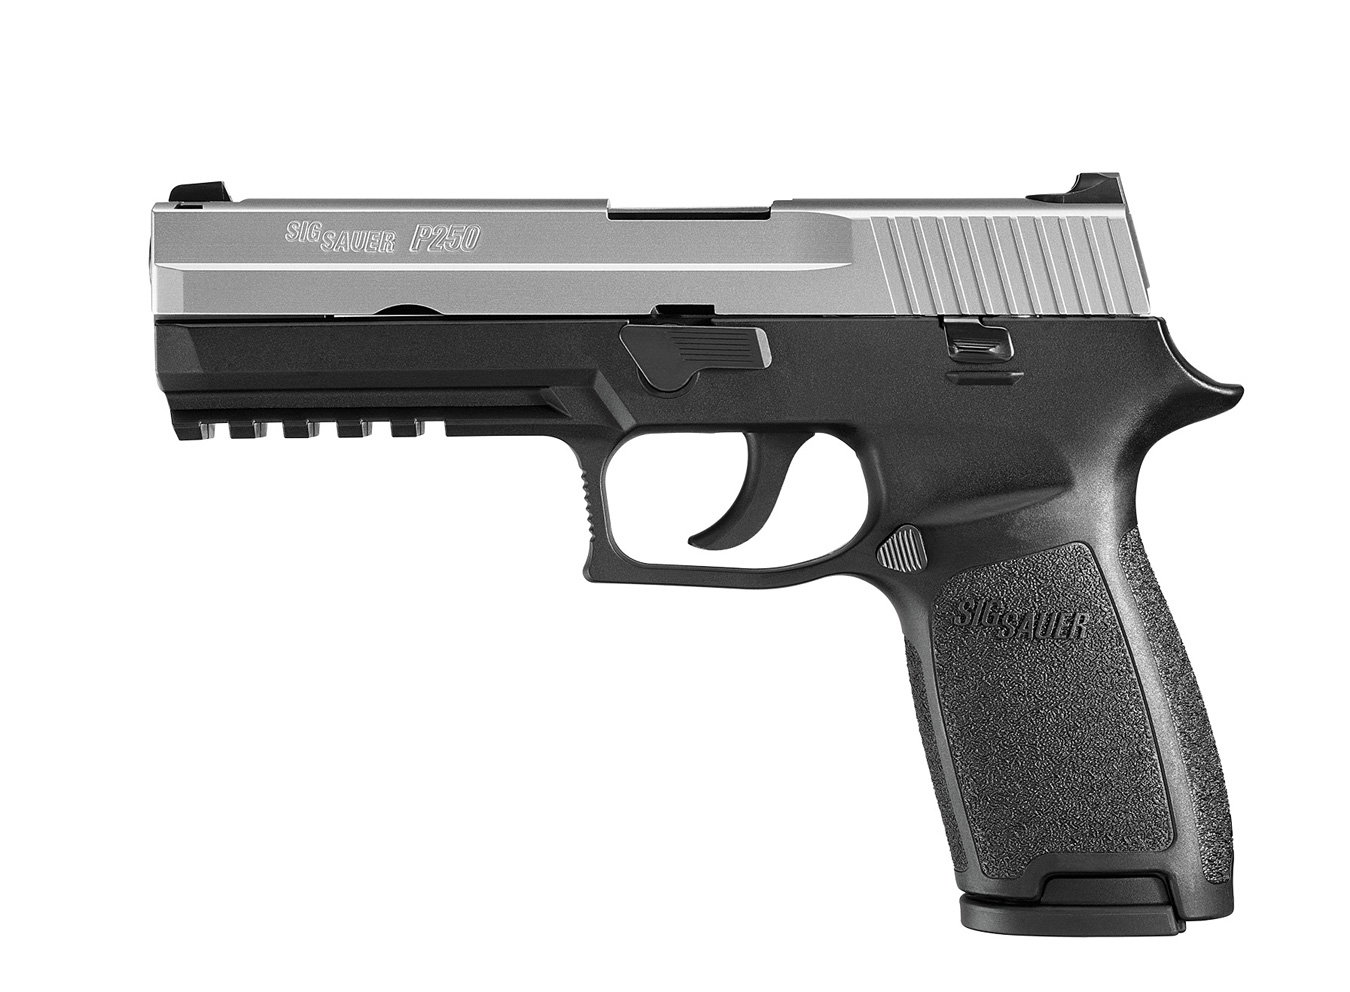 SIG P250 pistol, left profile, two tone